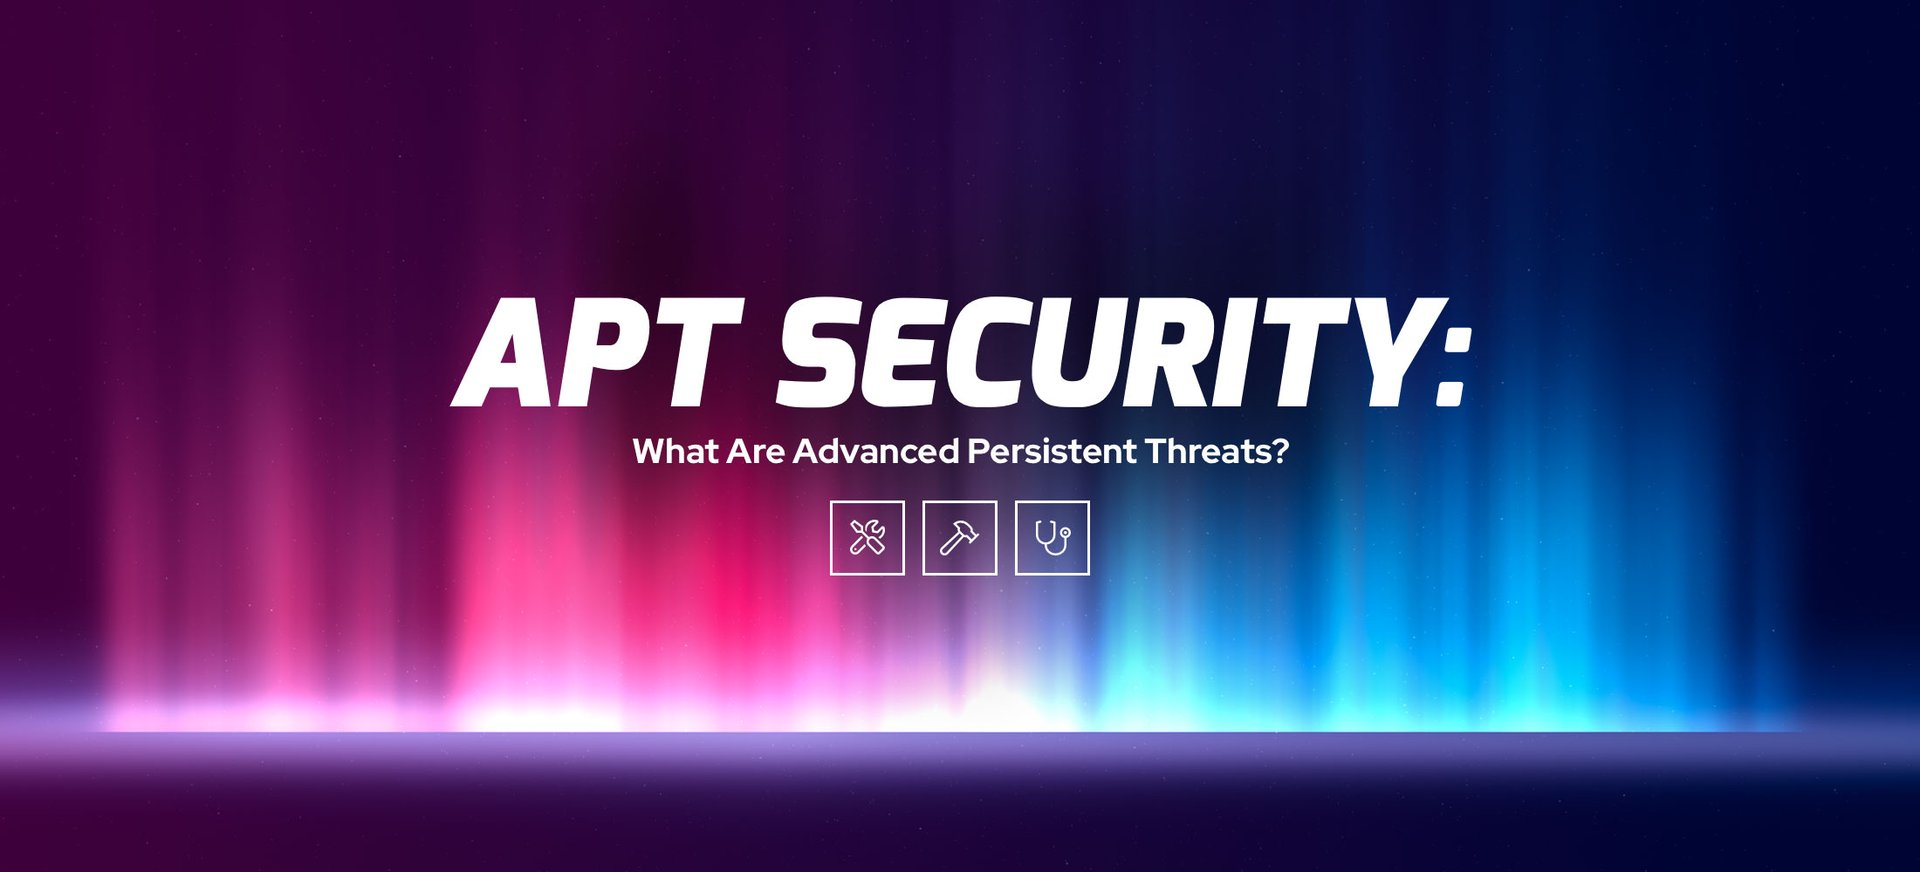 APT Security: What Are Advanced Persistent Threats?.